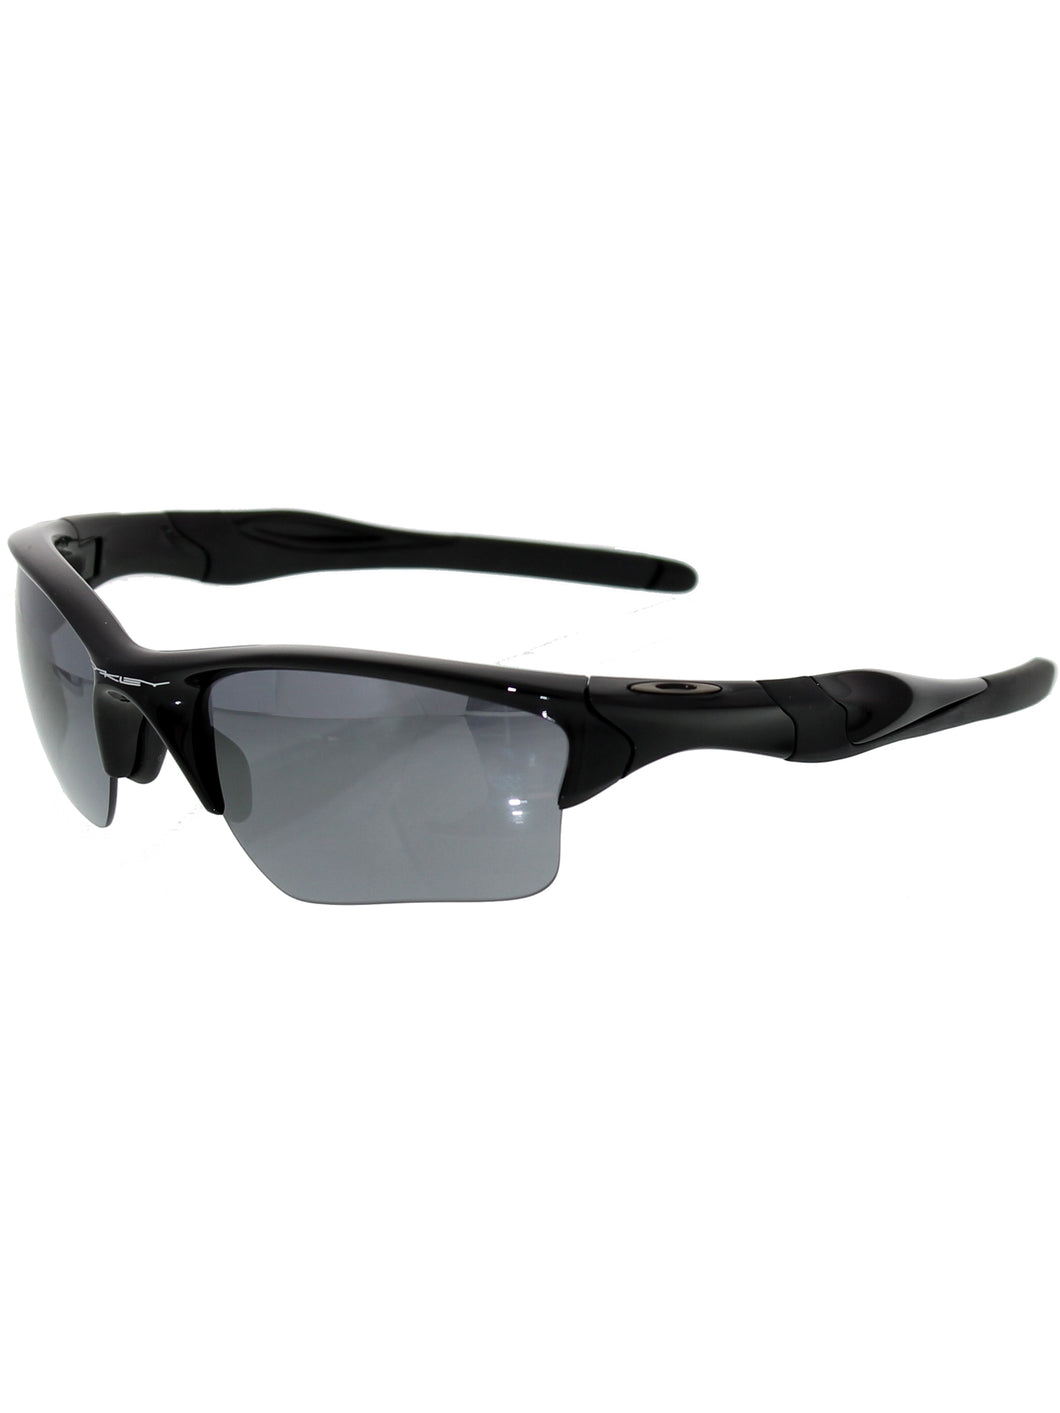 Oakley Sunglasses Mens OO9154-01 Half Jacket 2.0 XL Polished Black / Black Iridium Lenses - Watchbatteries